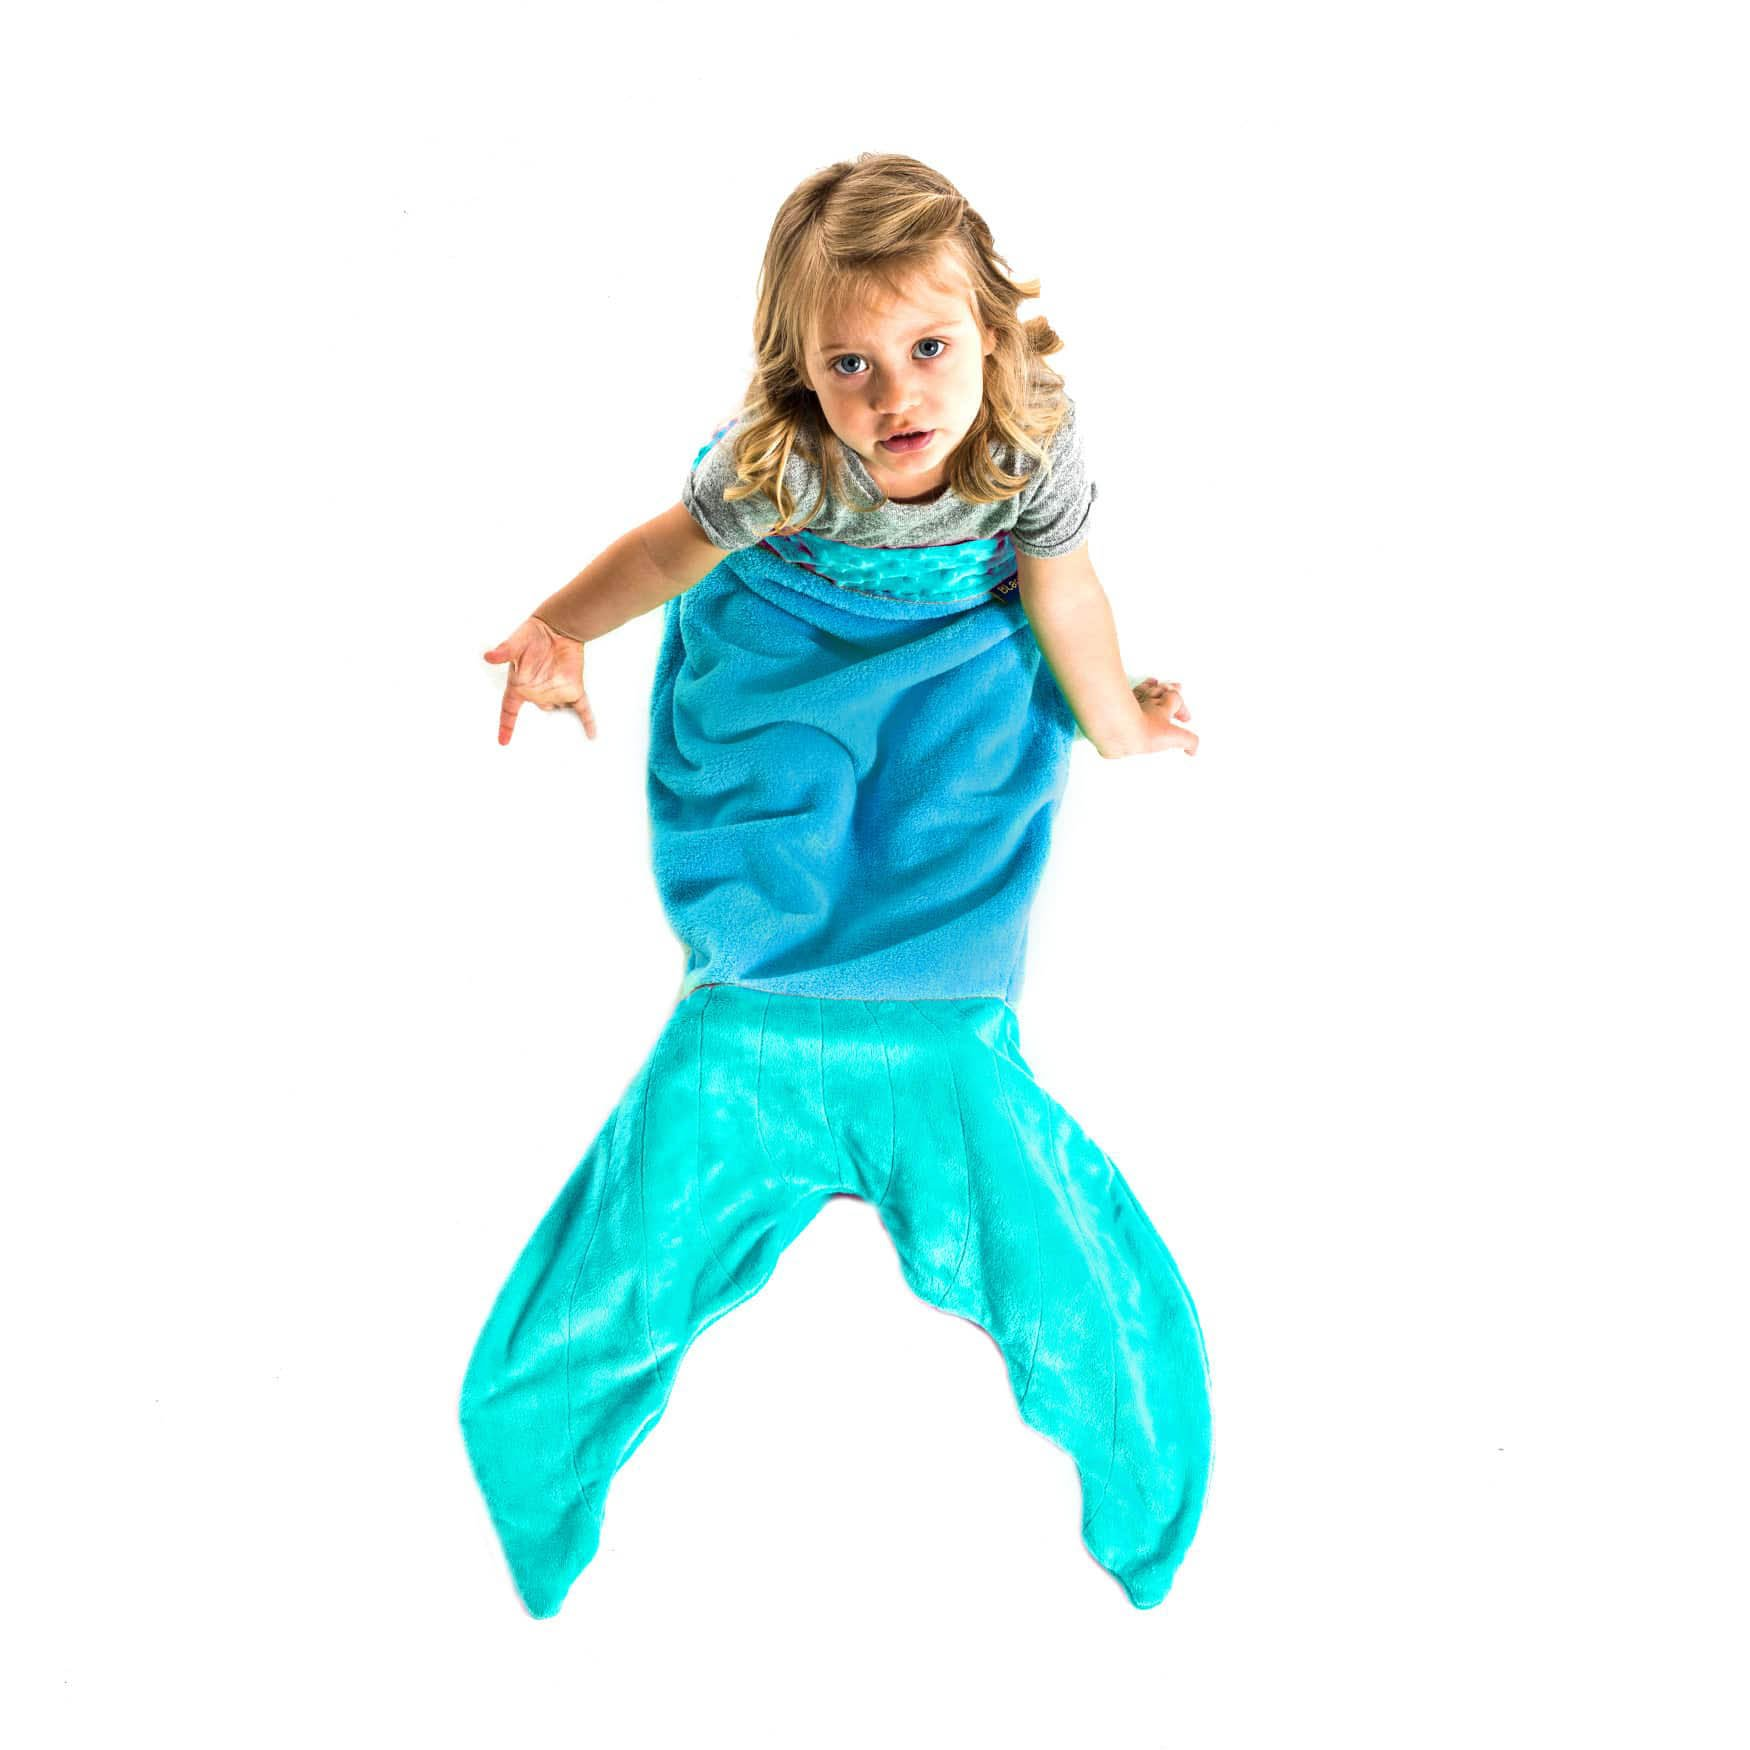 Blankie Tails Teal Mermaid Blanket for Toddlers - Toddler Fleece Blanket That Lets Feet Fit Into The Tail - Perfect Teal Toddler Blanket for Girls by Blankie Tails